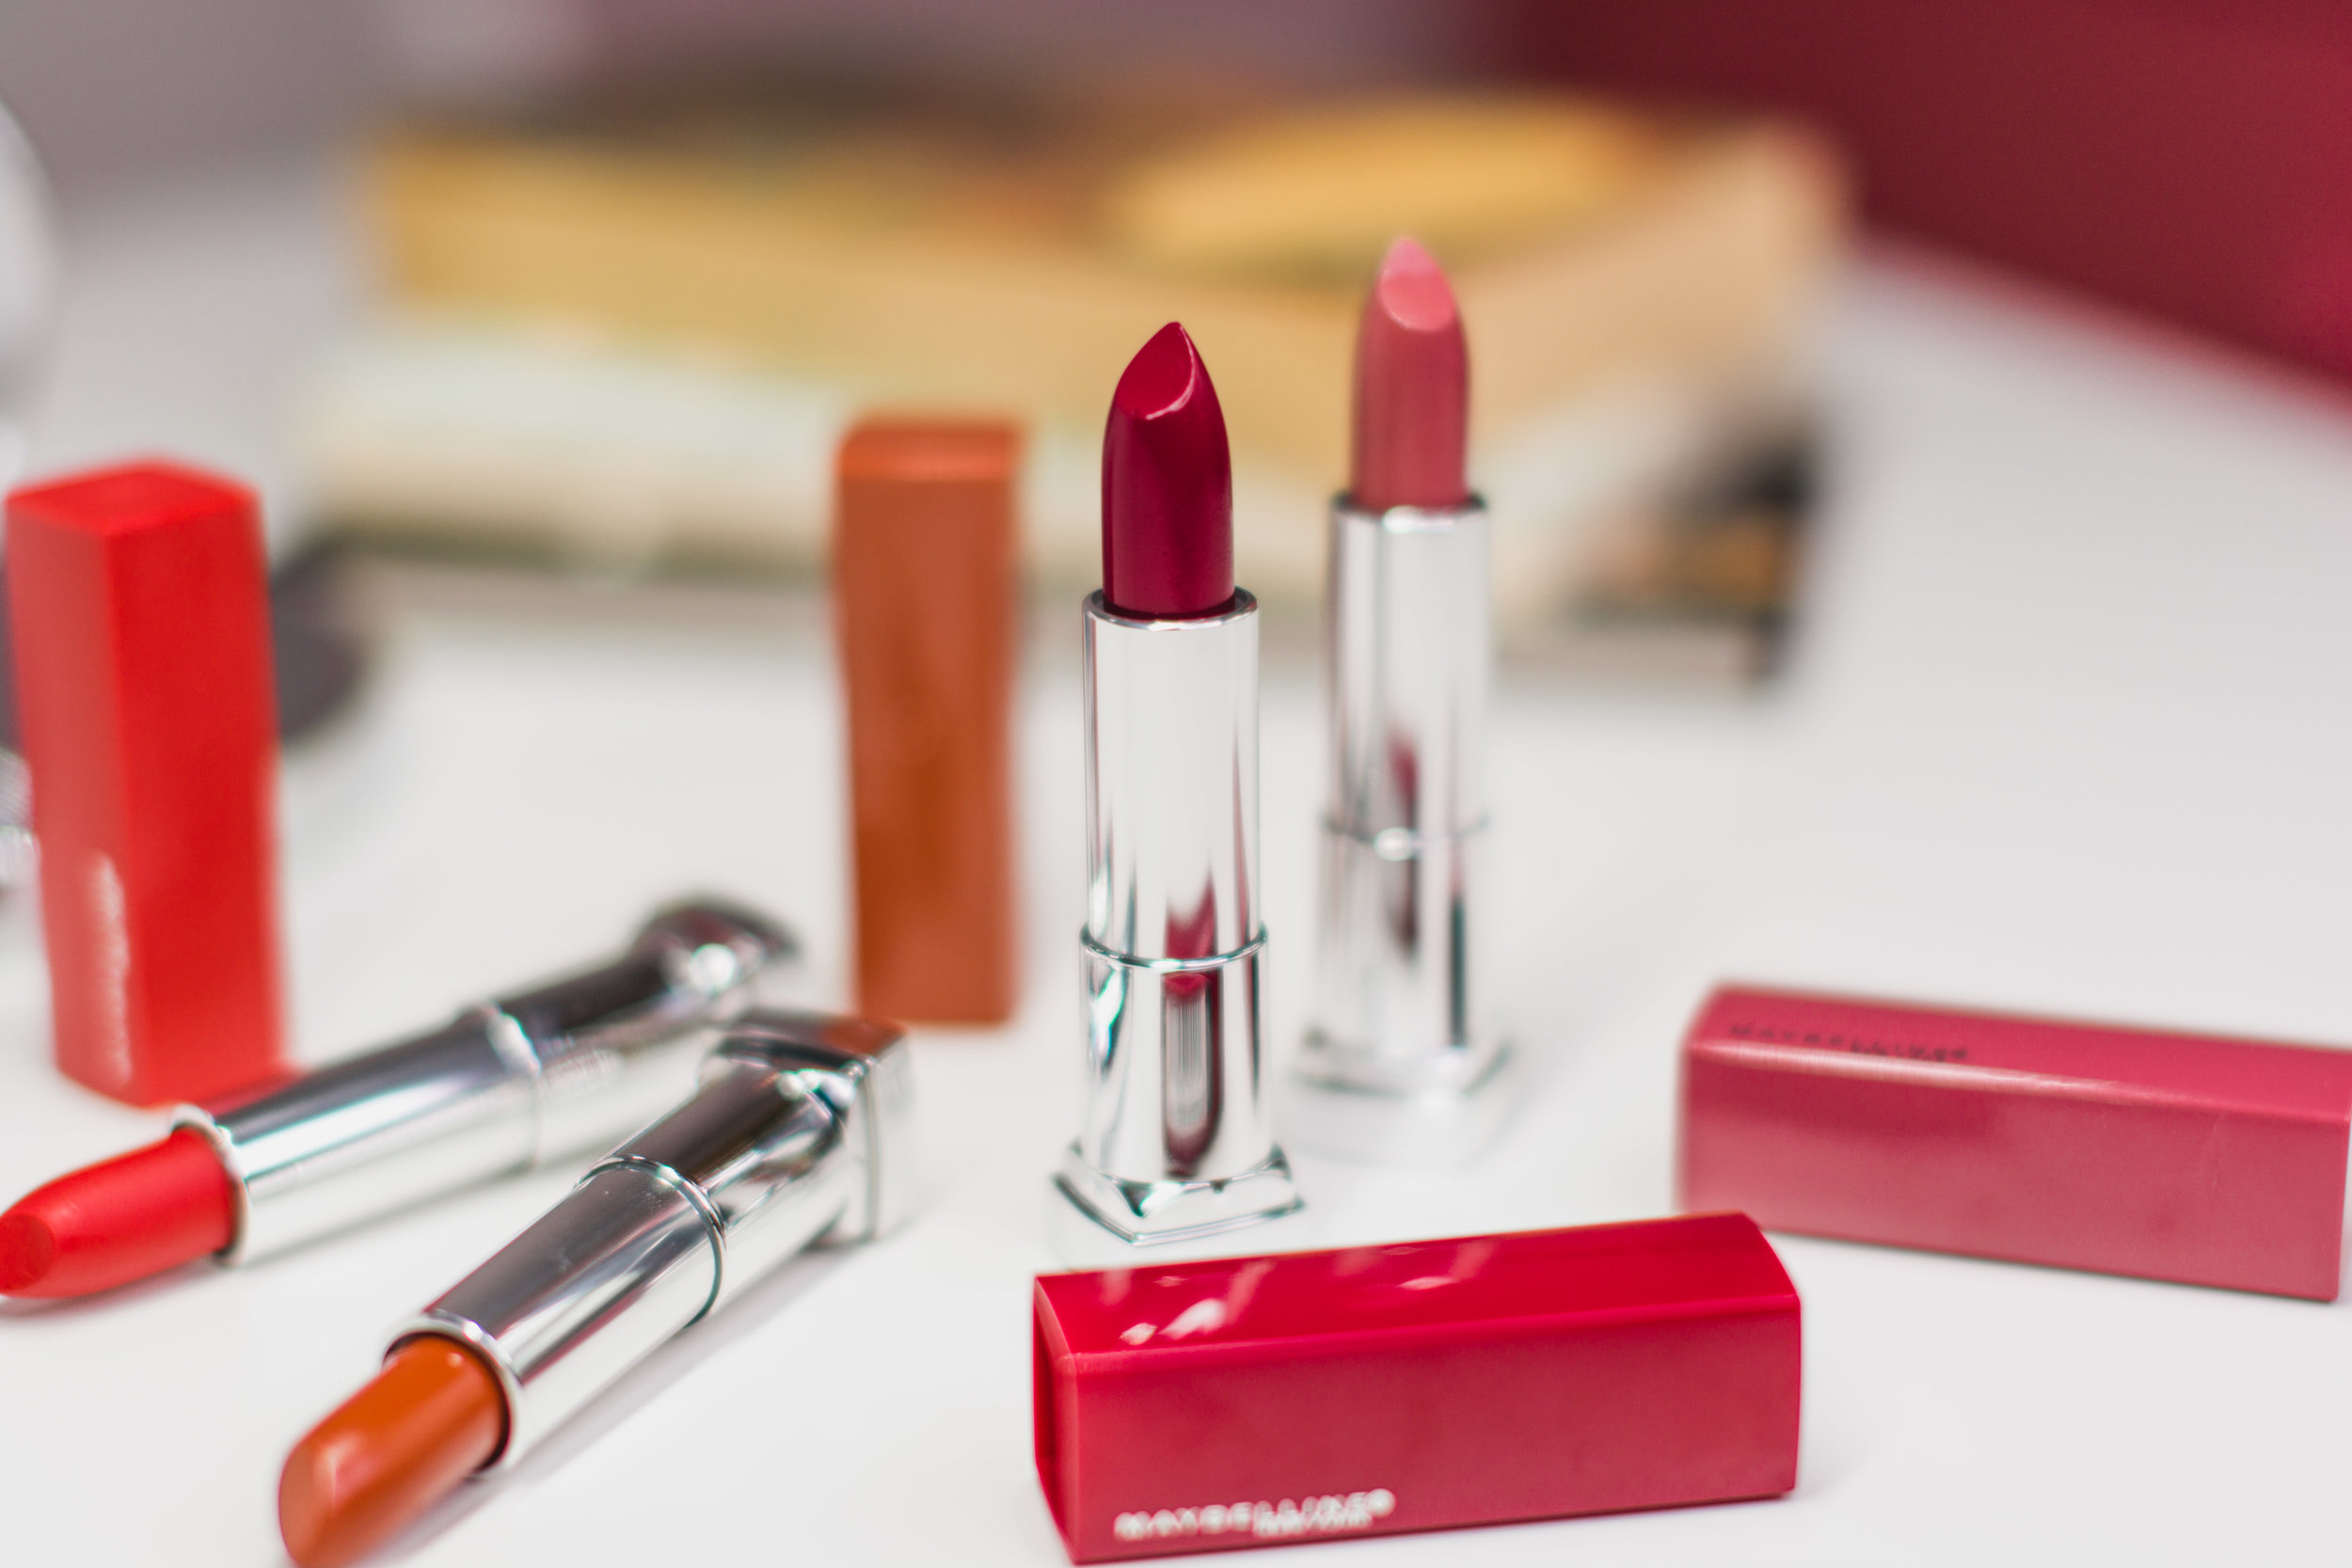 maybelline-lipstick-made-for-all_review-philippines_2019-12.jpg